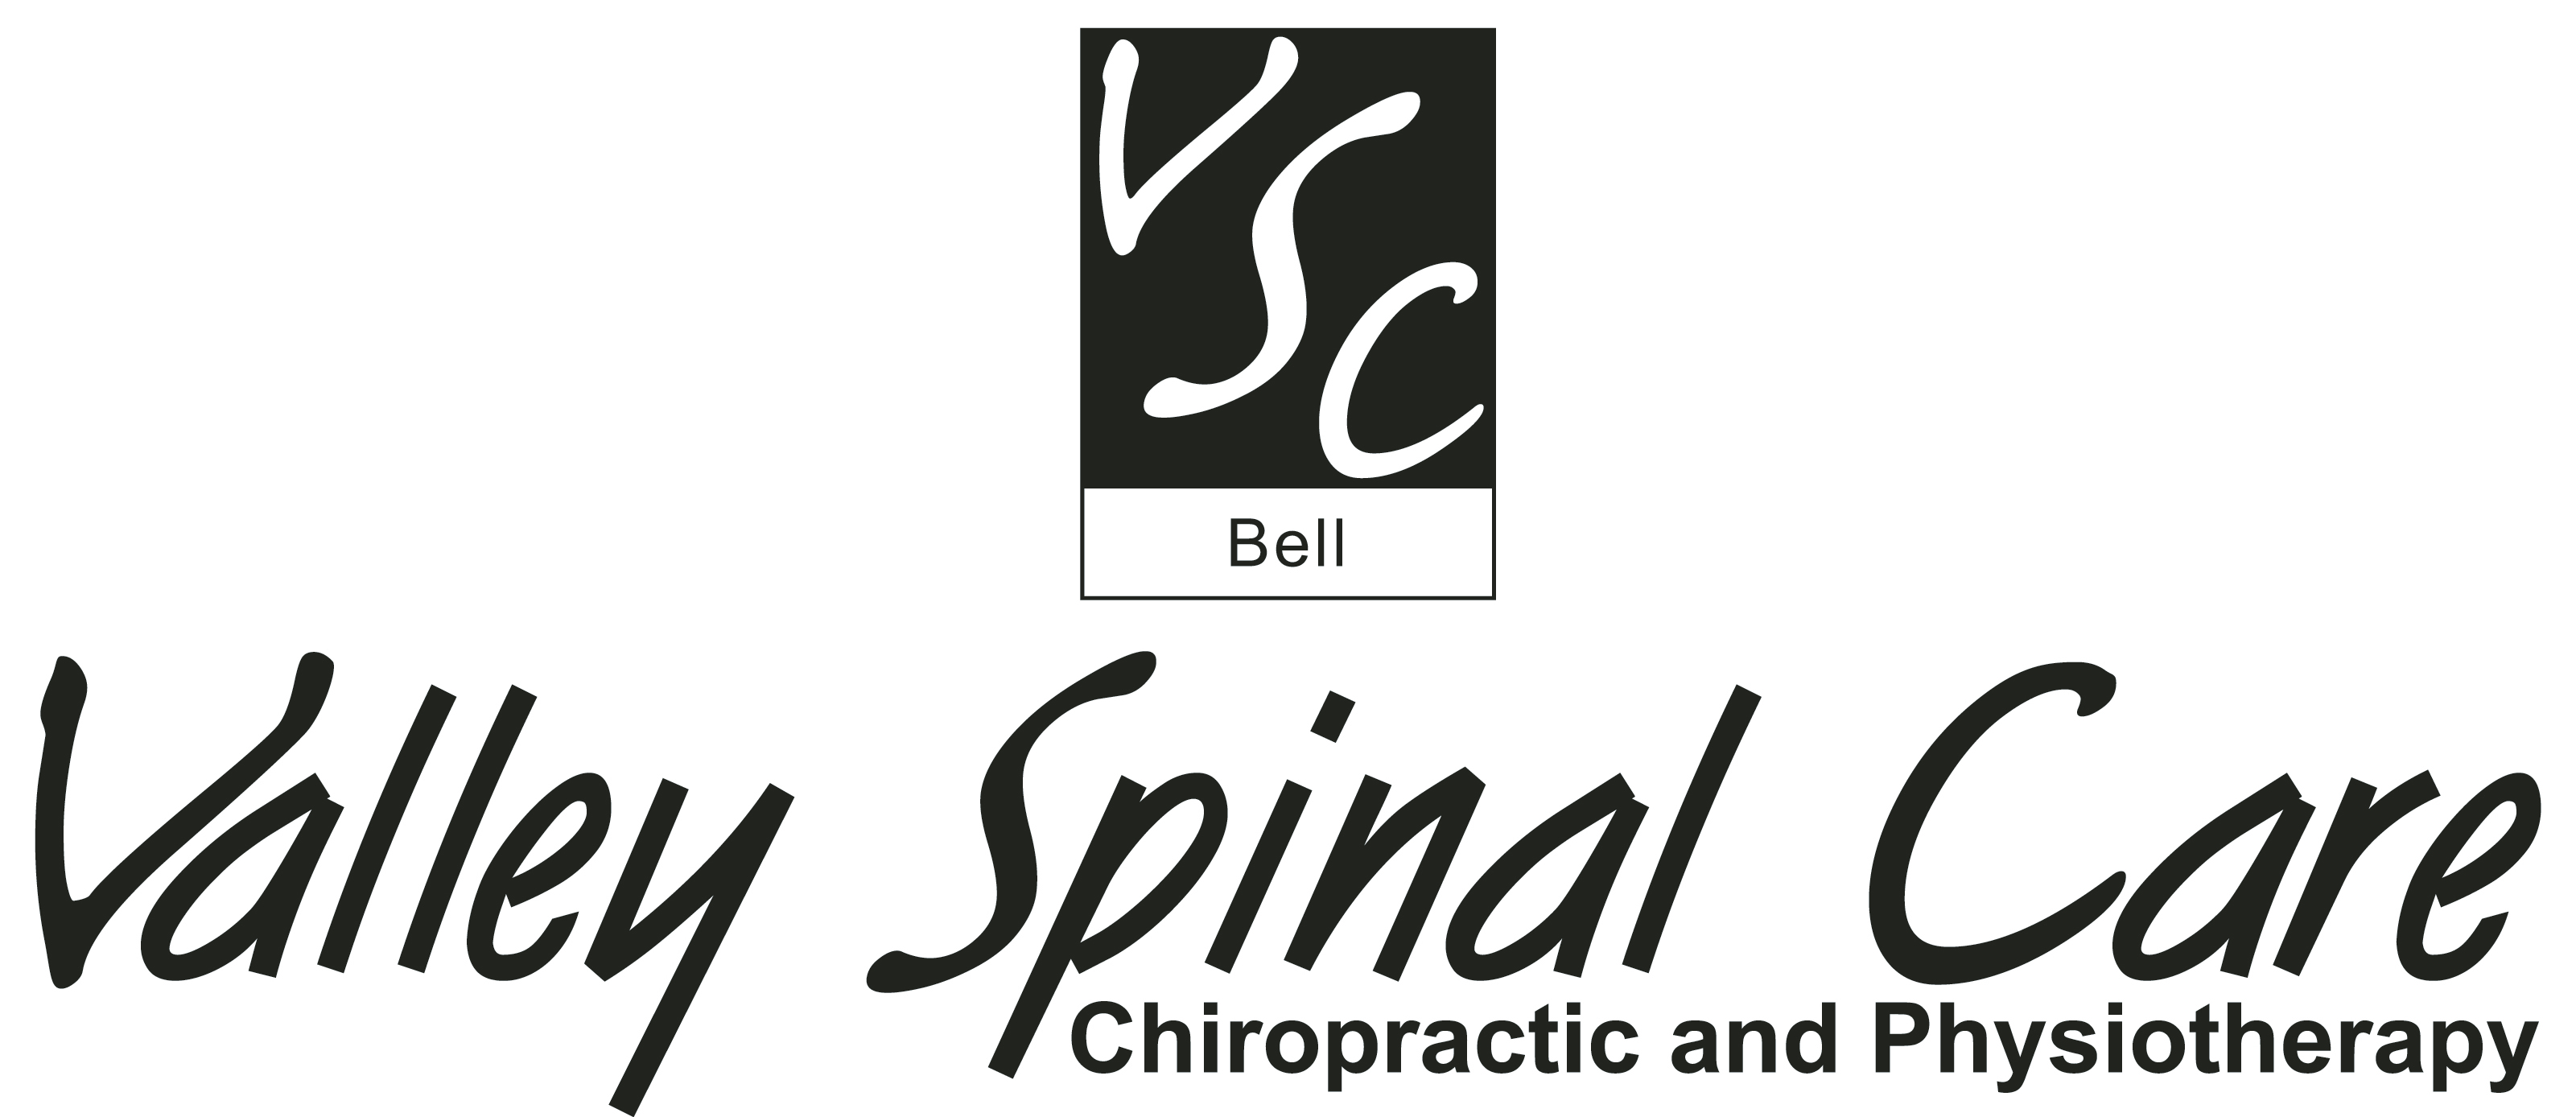 Valley Spinal Care